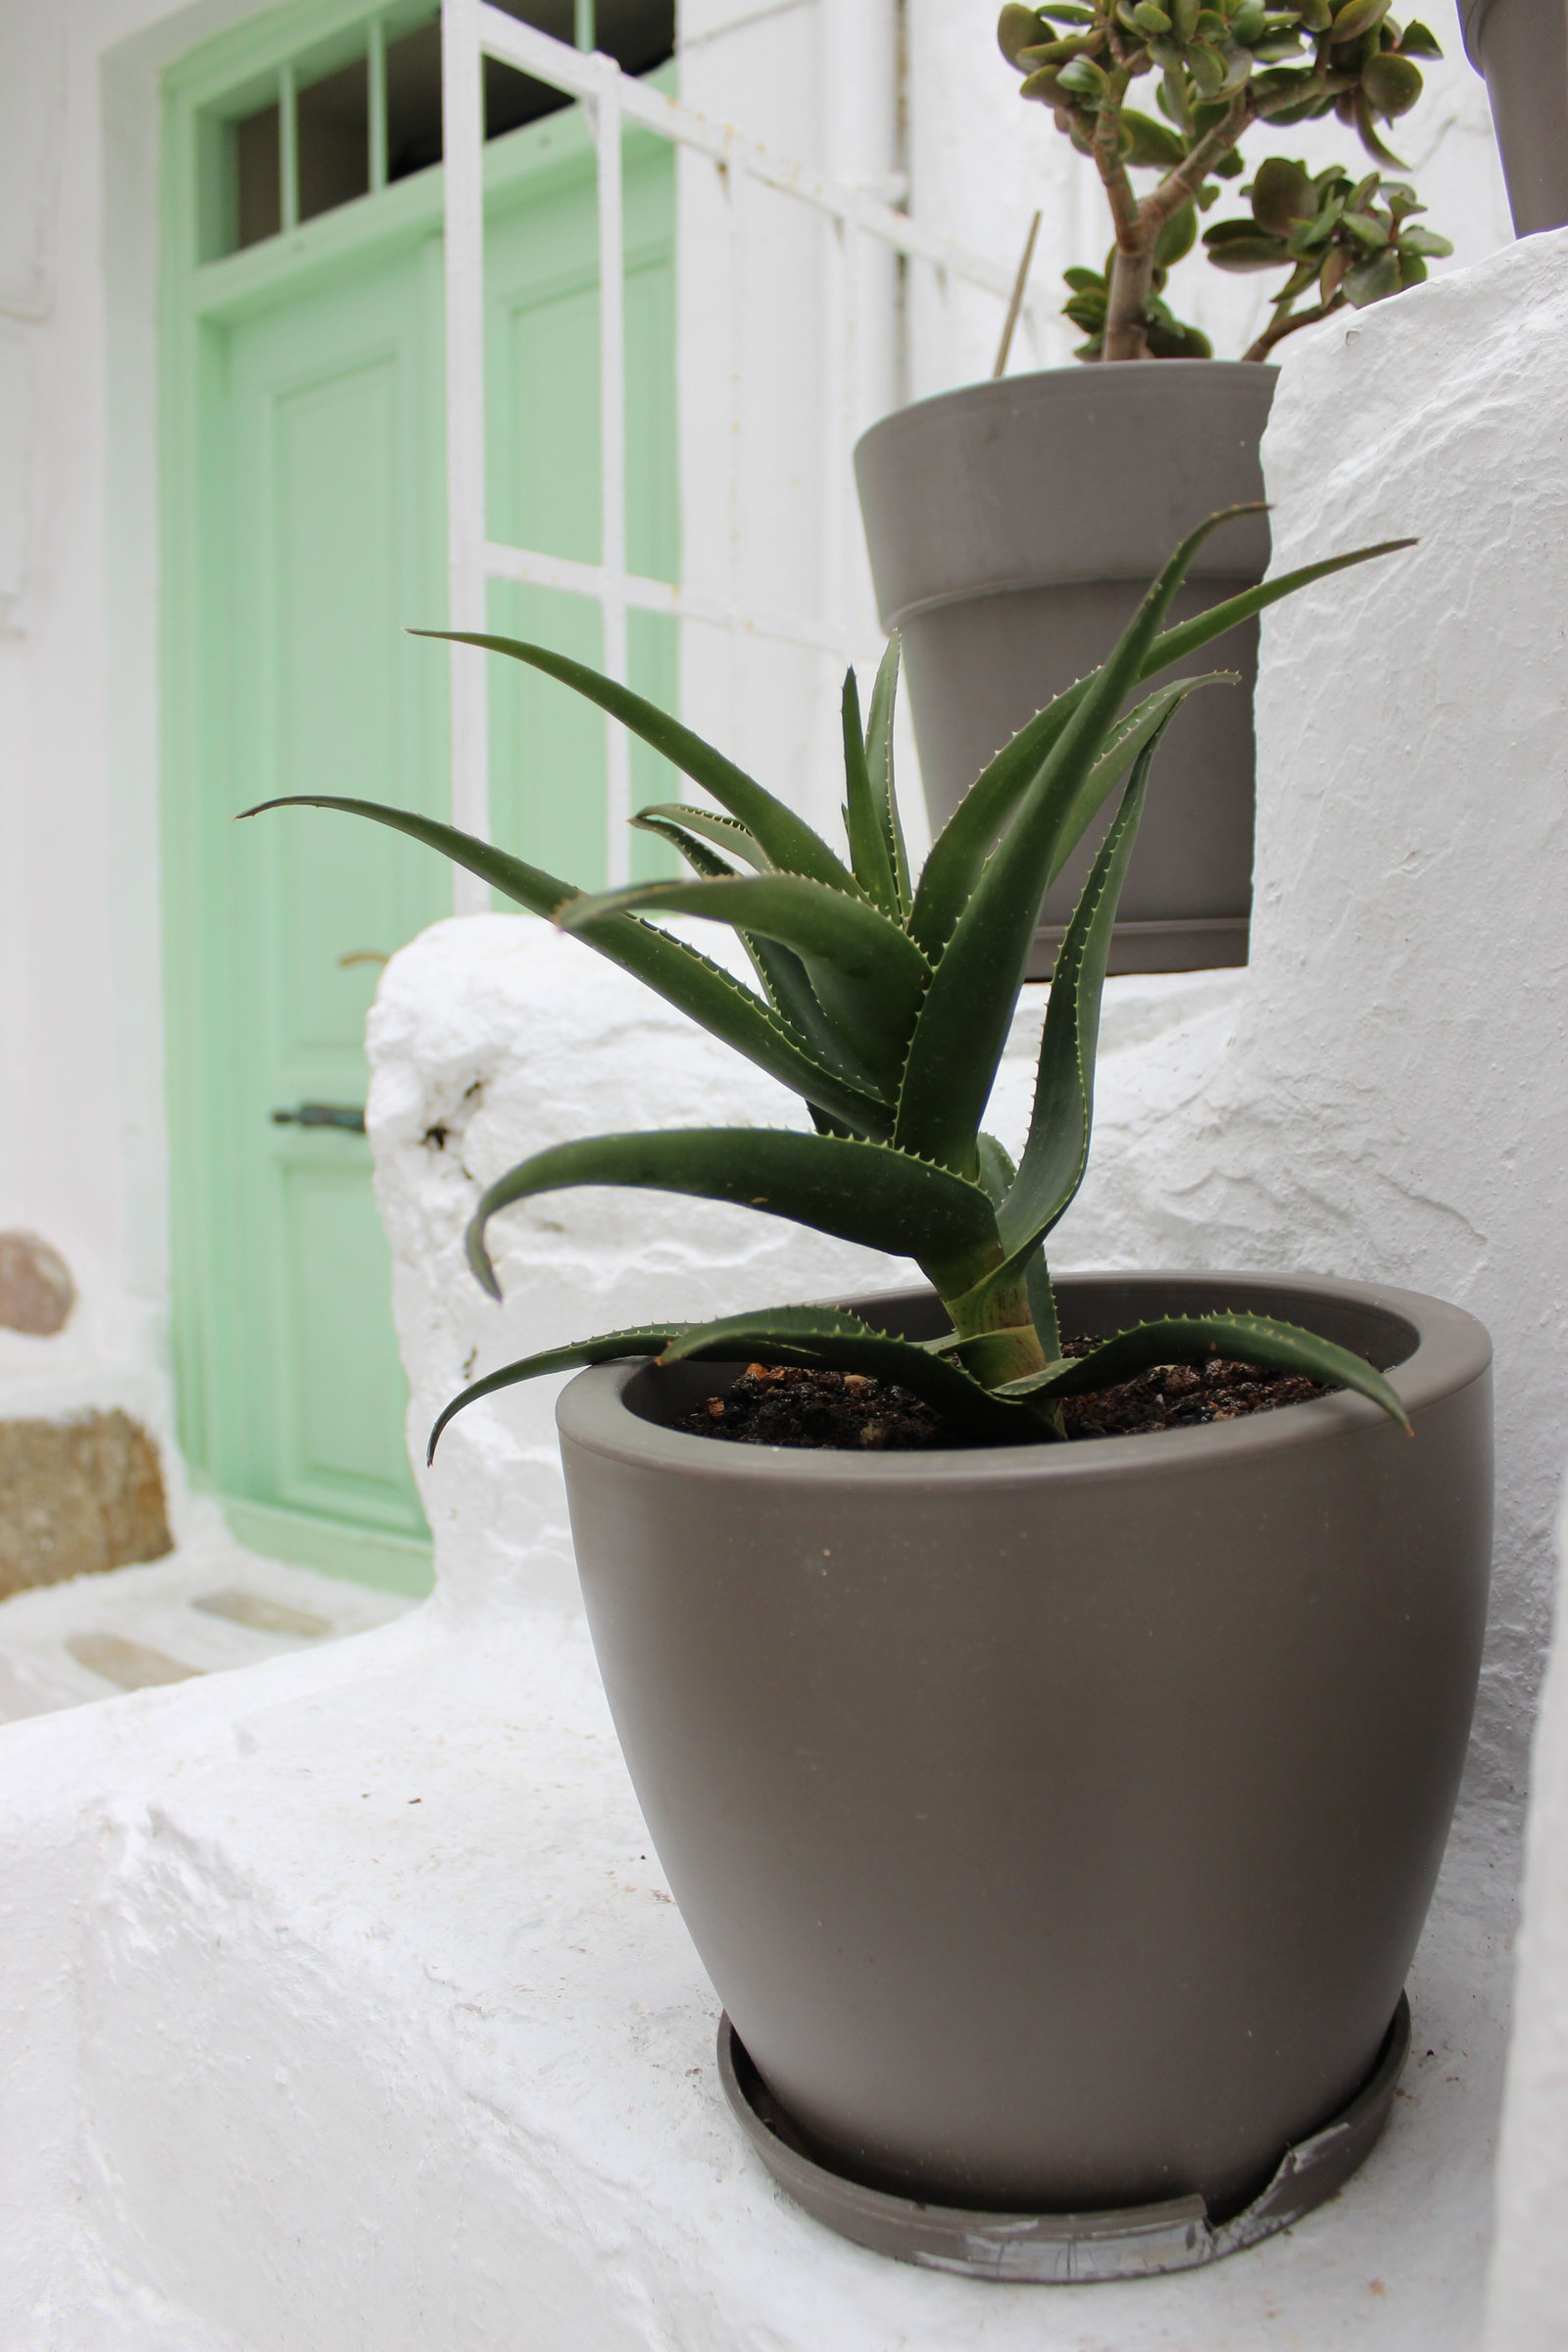 Succulent plant on a white step in Greece